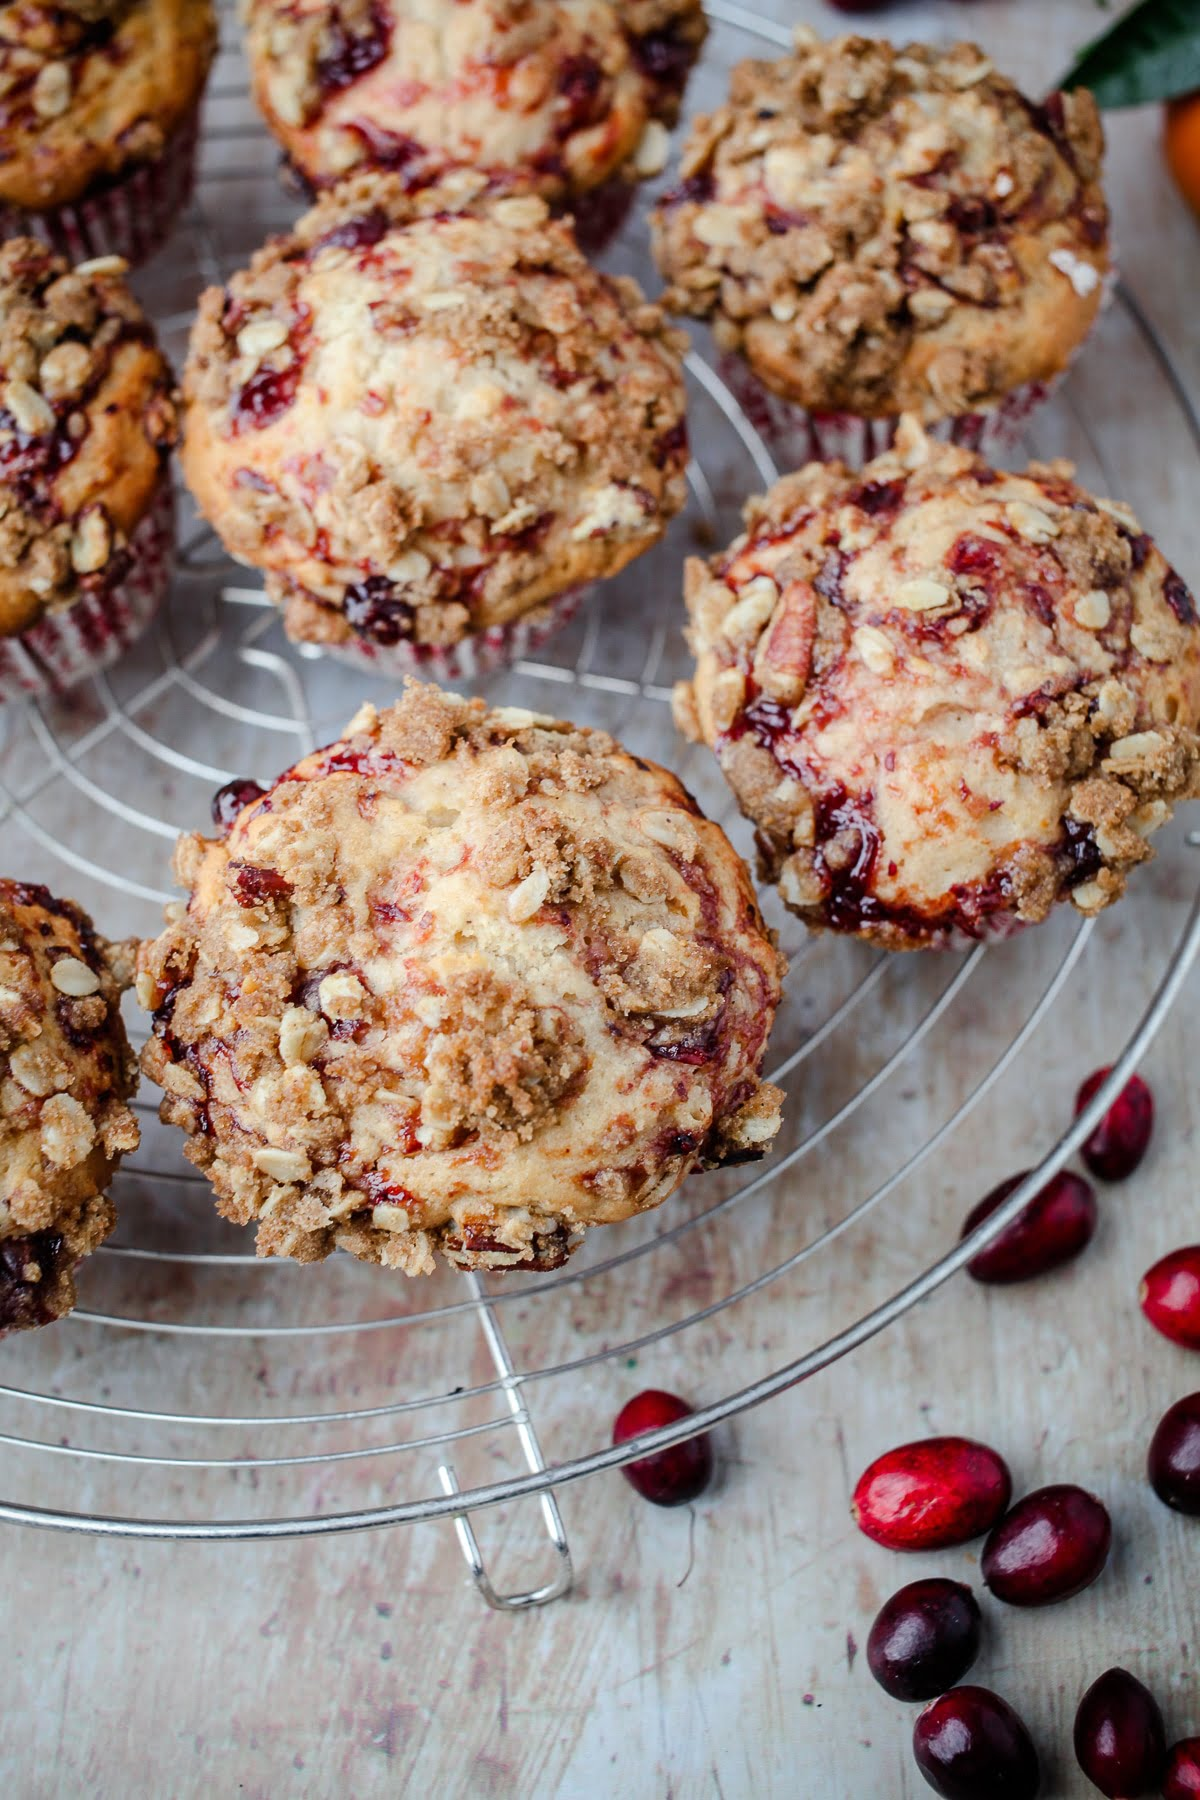 Vegan Leftover Cranberry Sauce Muffins with Streusel Topping